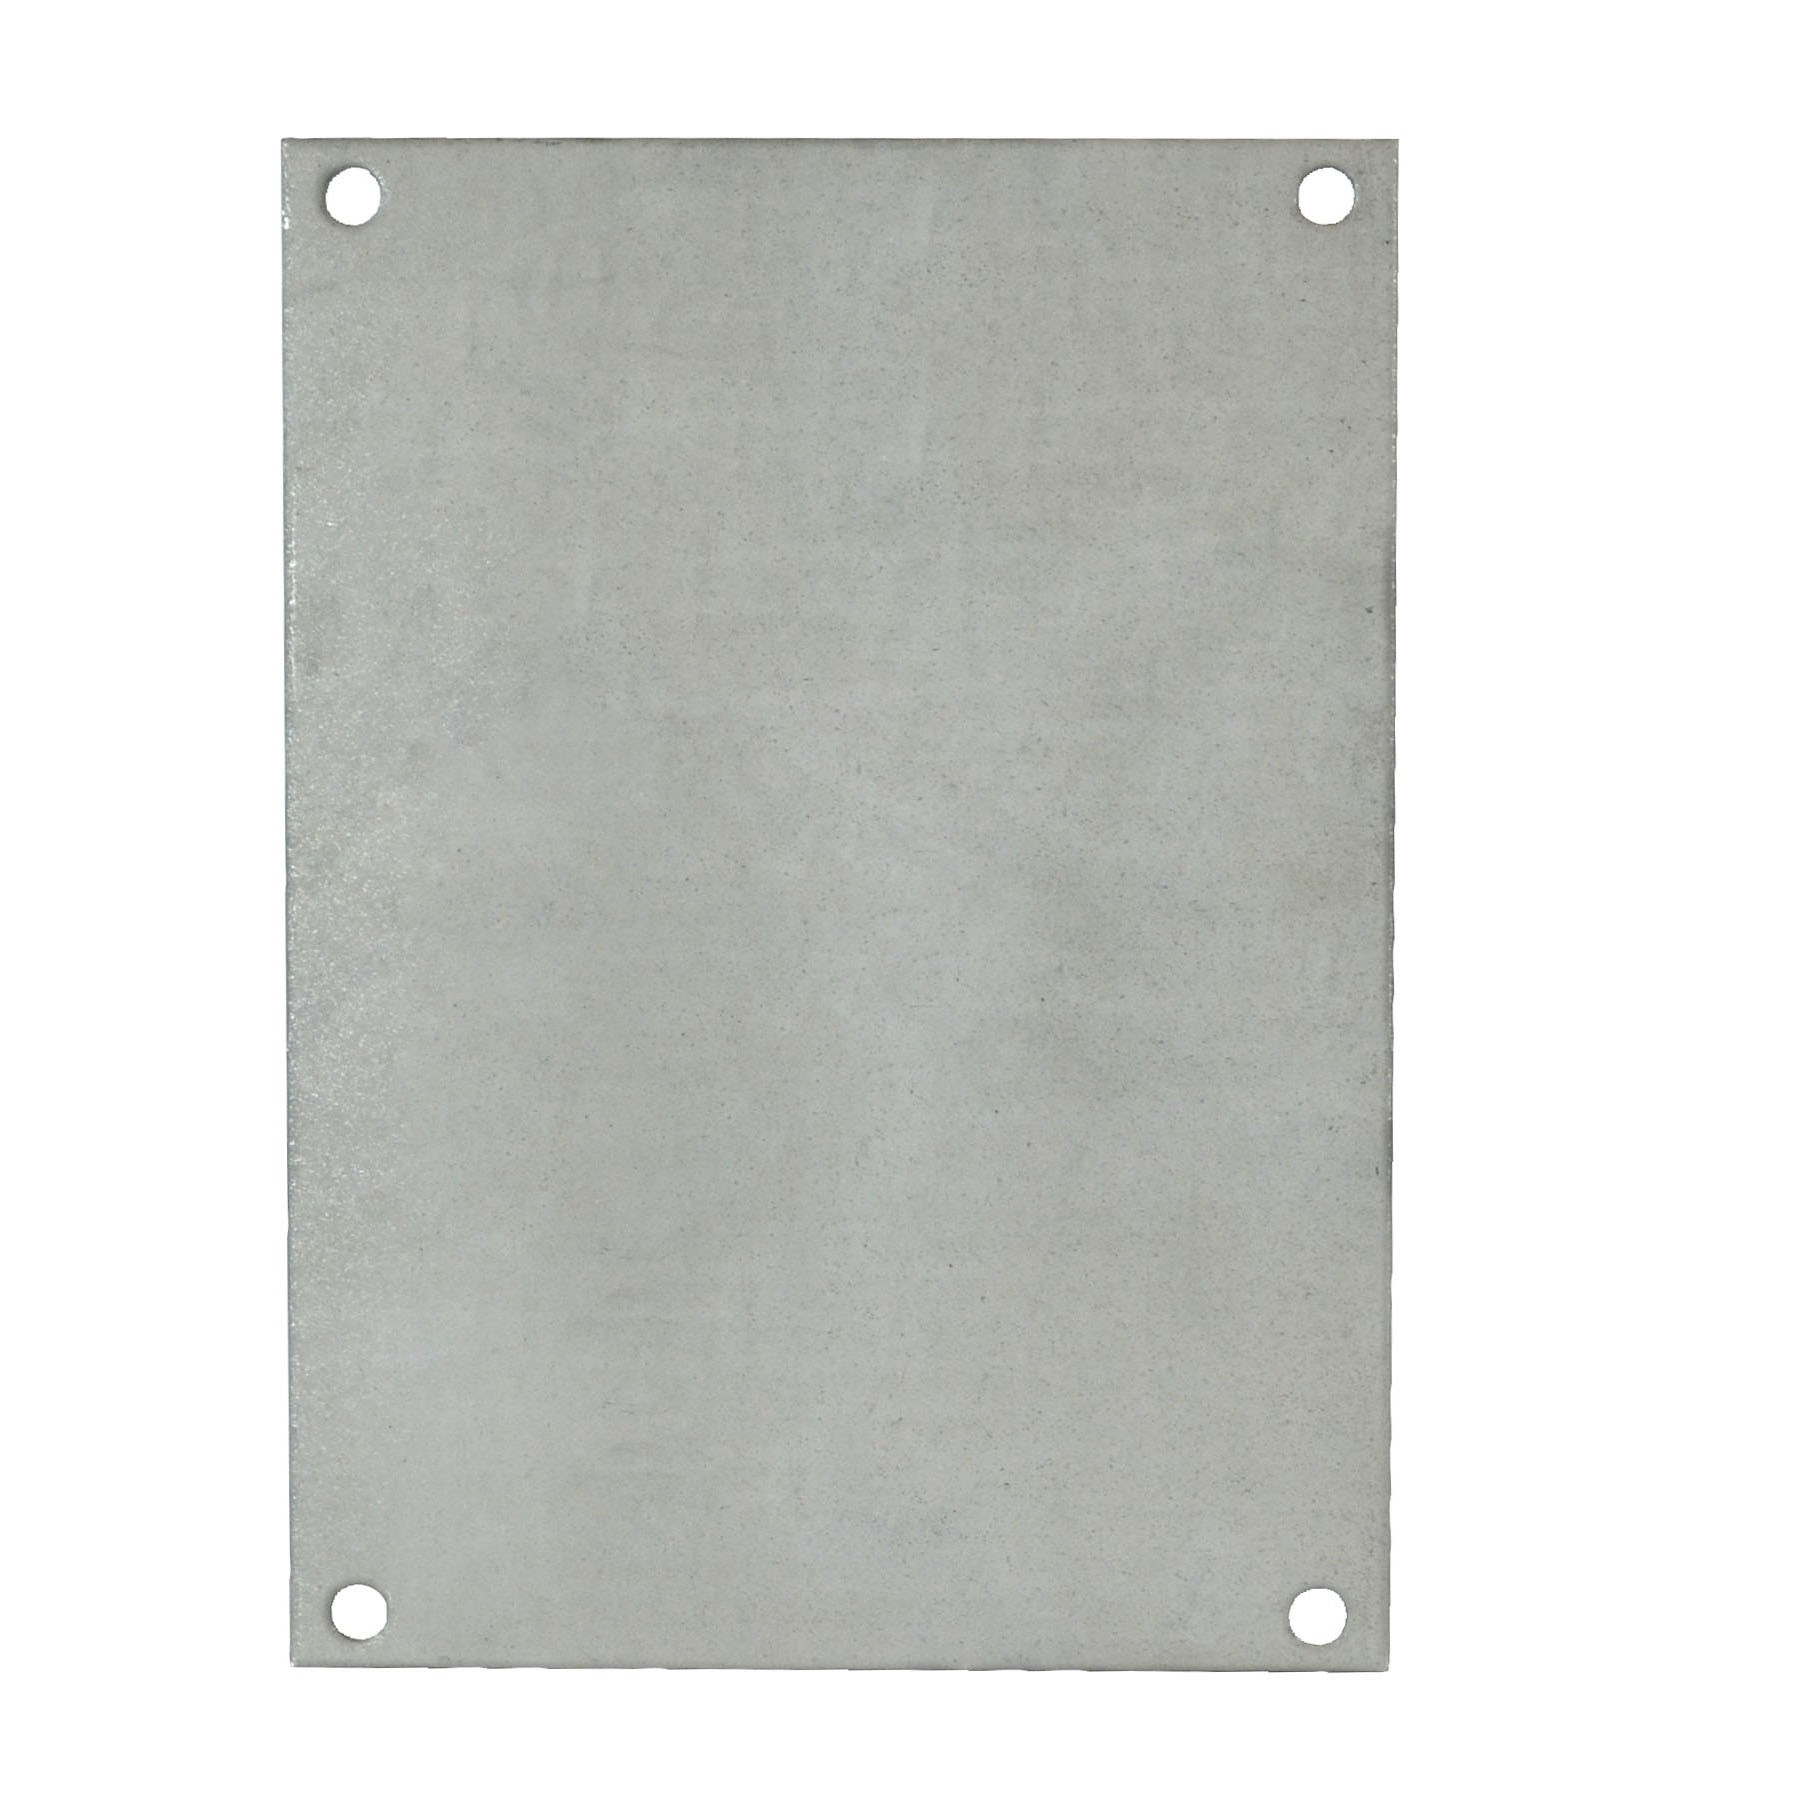 "Galvanized Back Panel for 12"" x 10"" Enclosures"